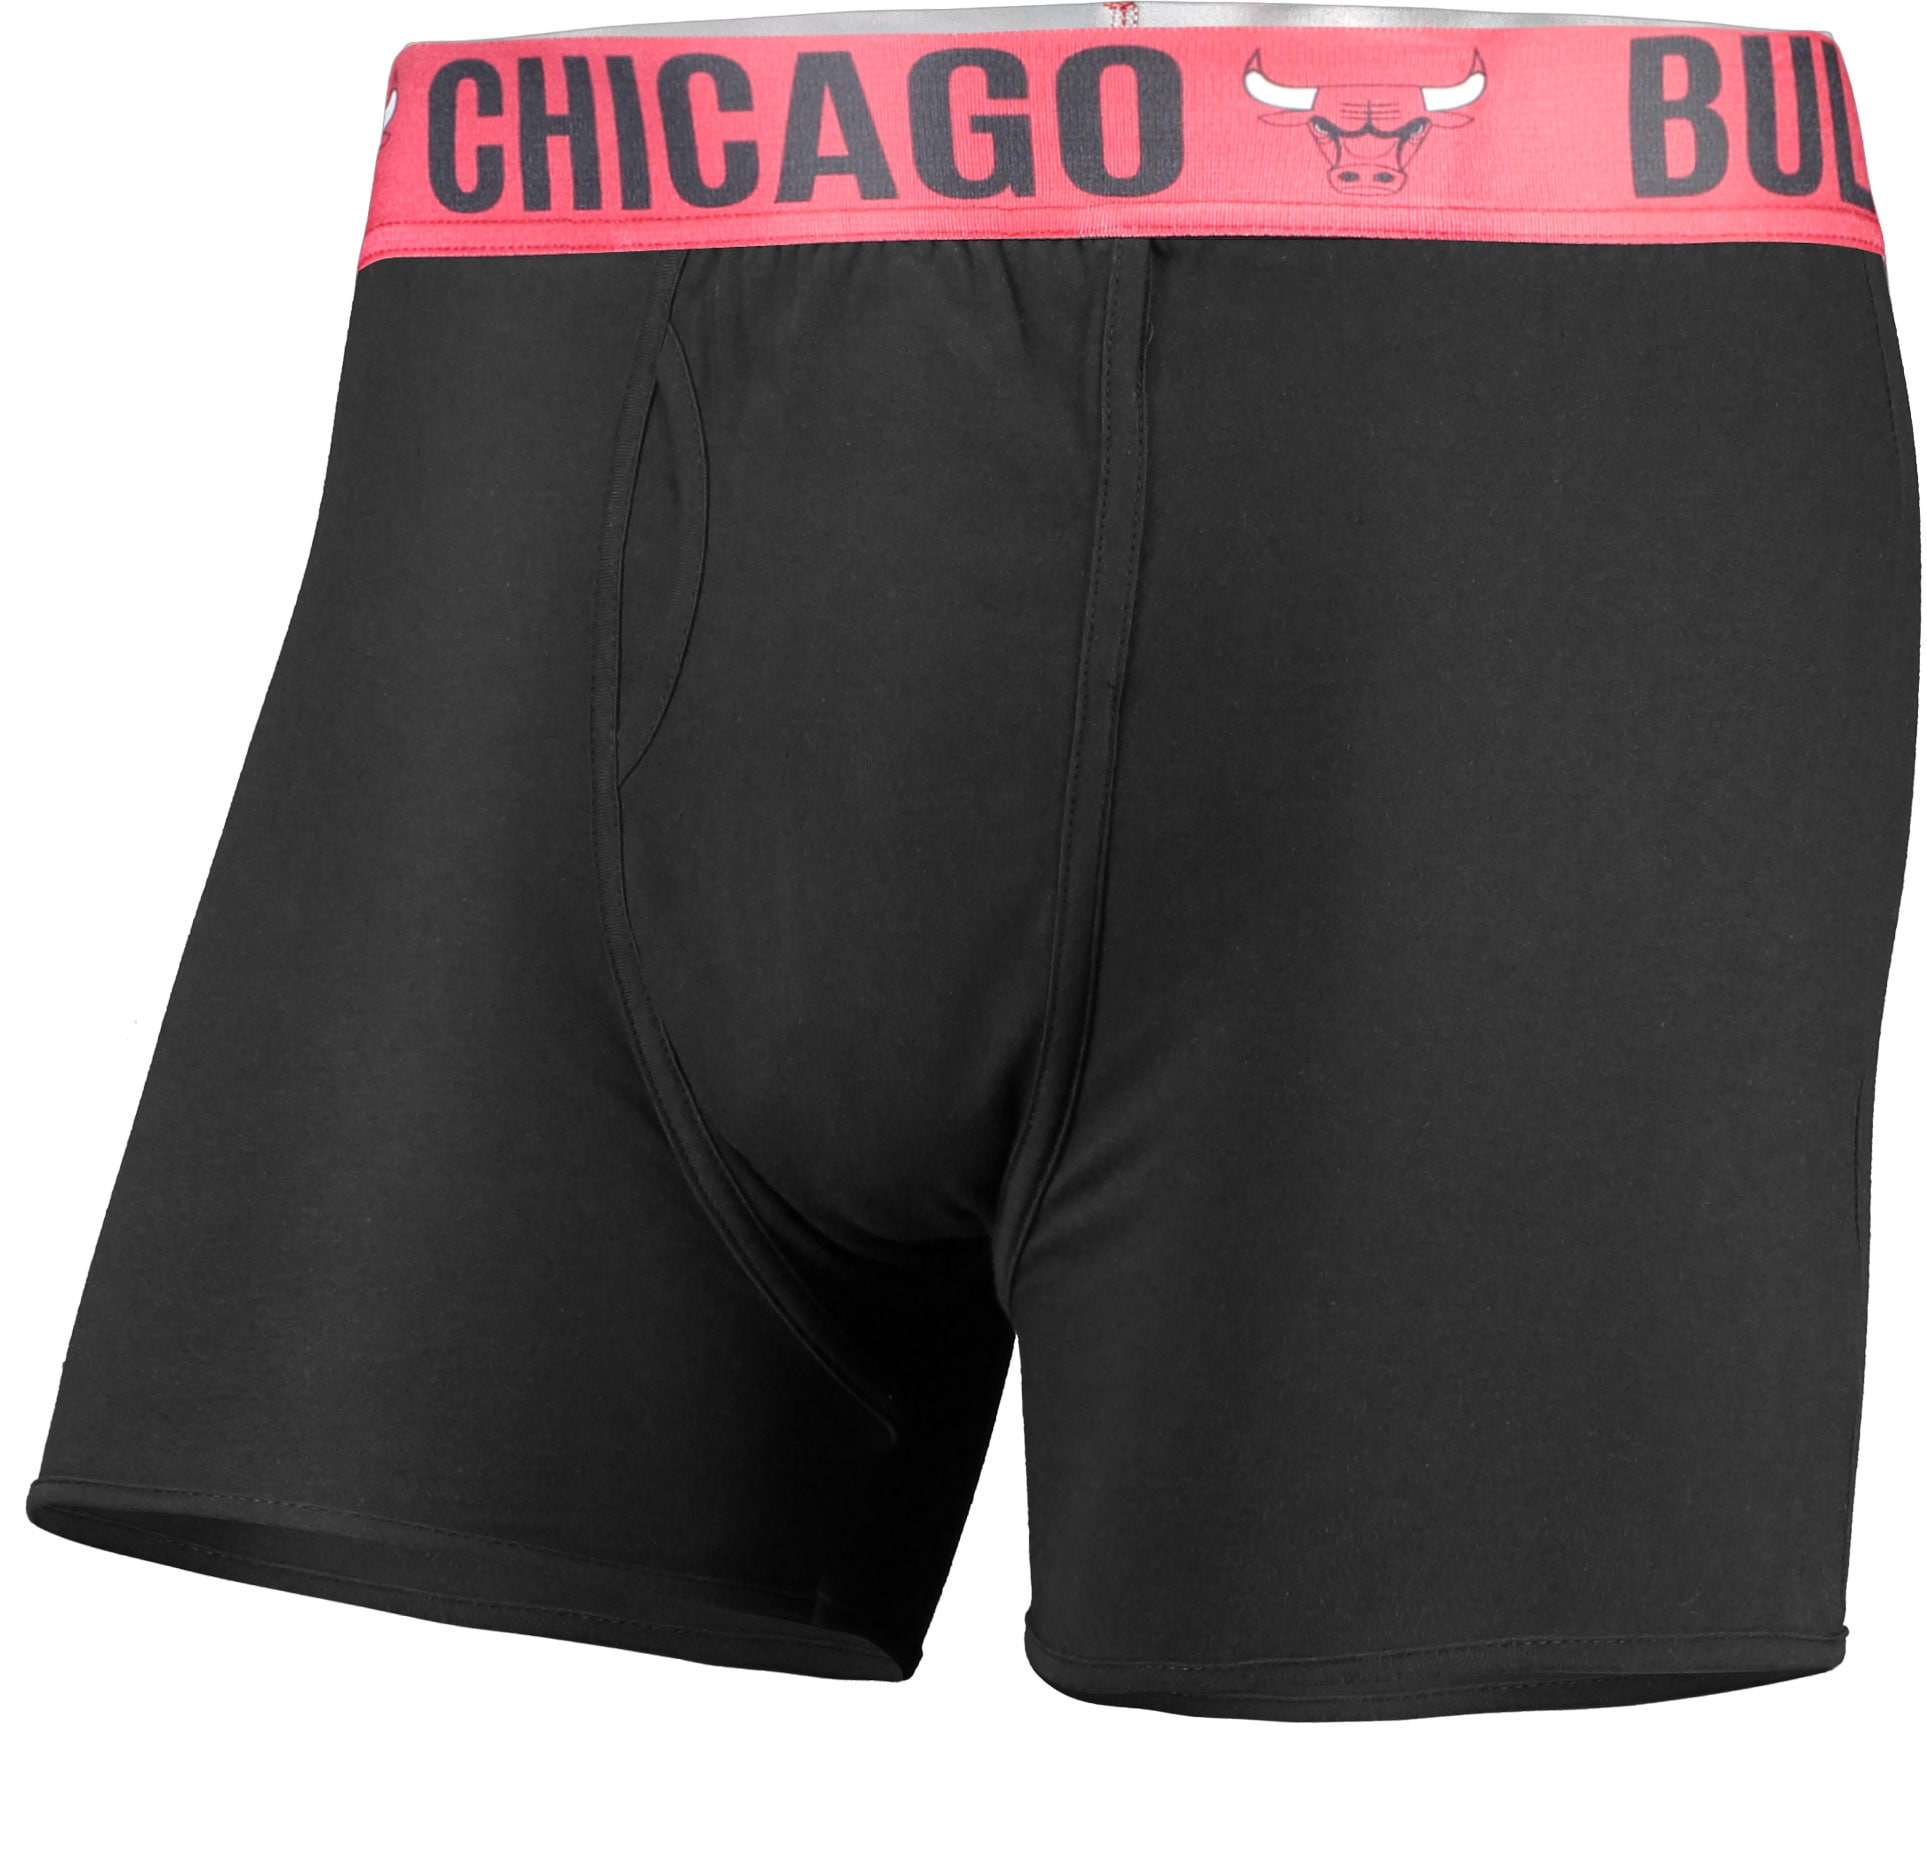 Chicago Bulls Concepts Sport Boxer Brief with Sublimated Waistband - Black